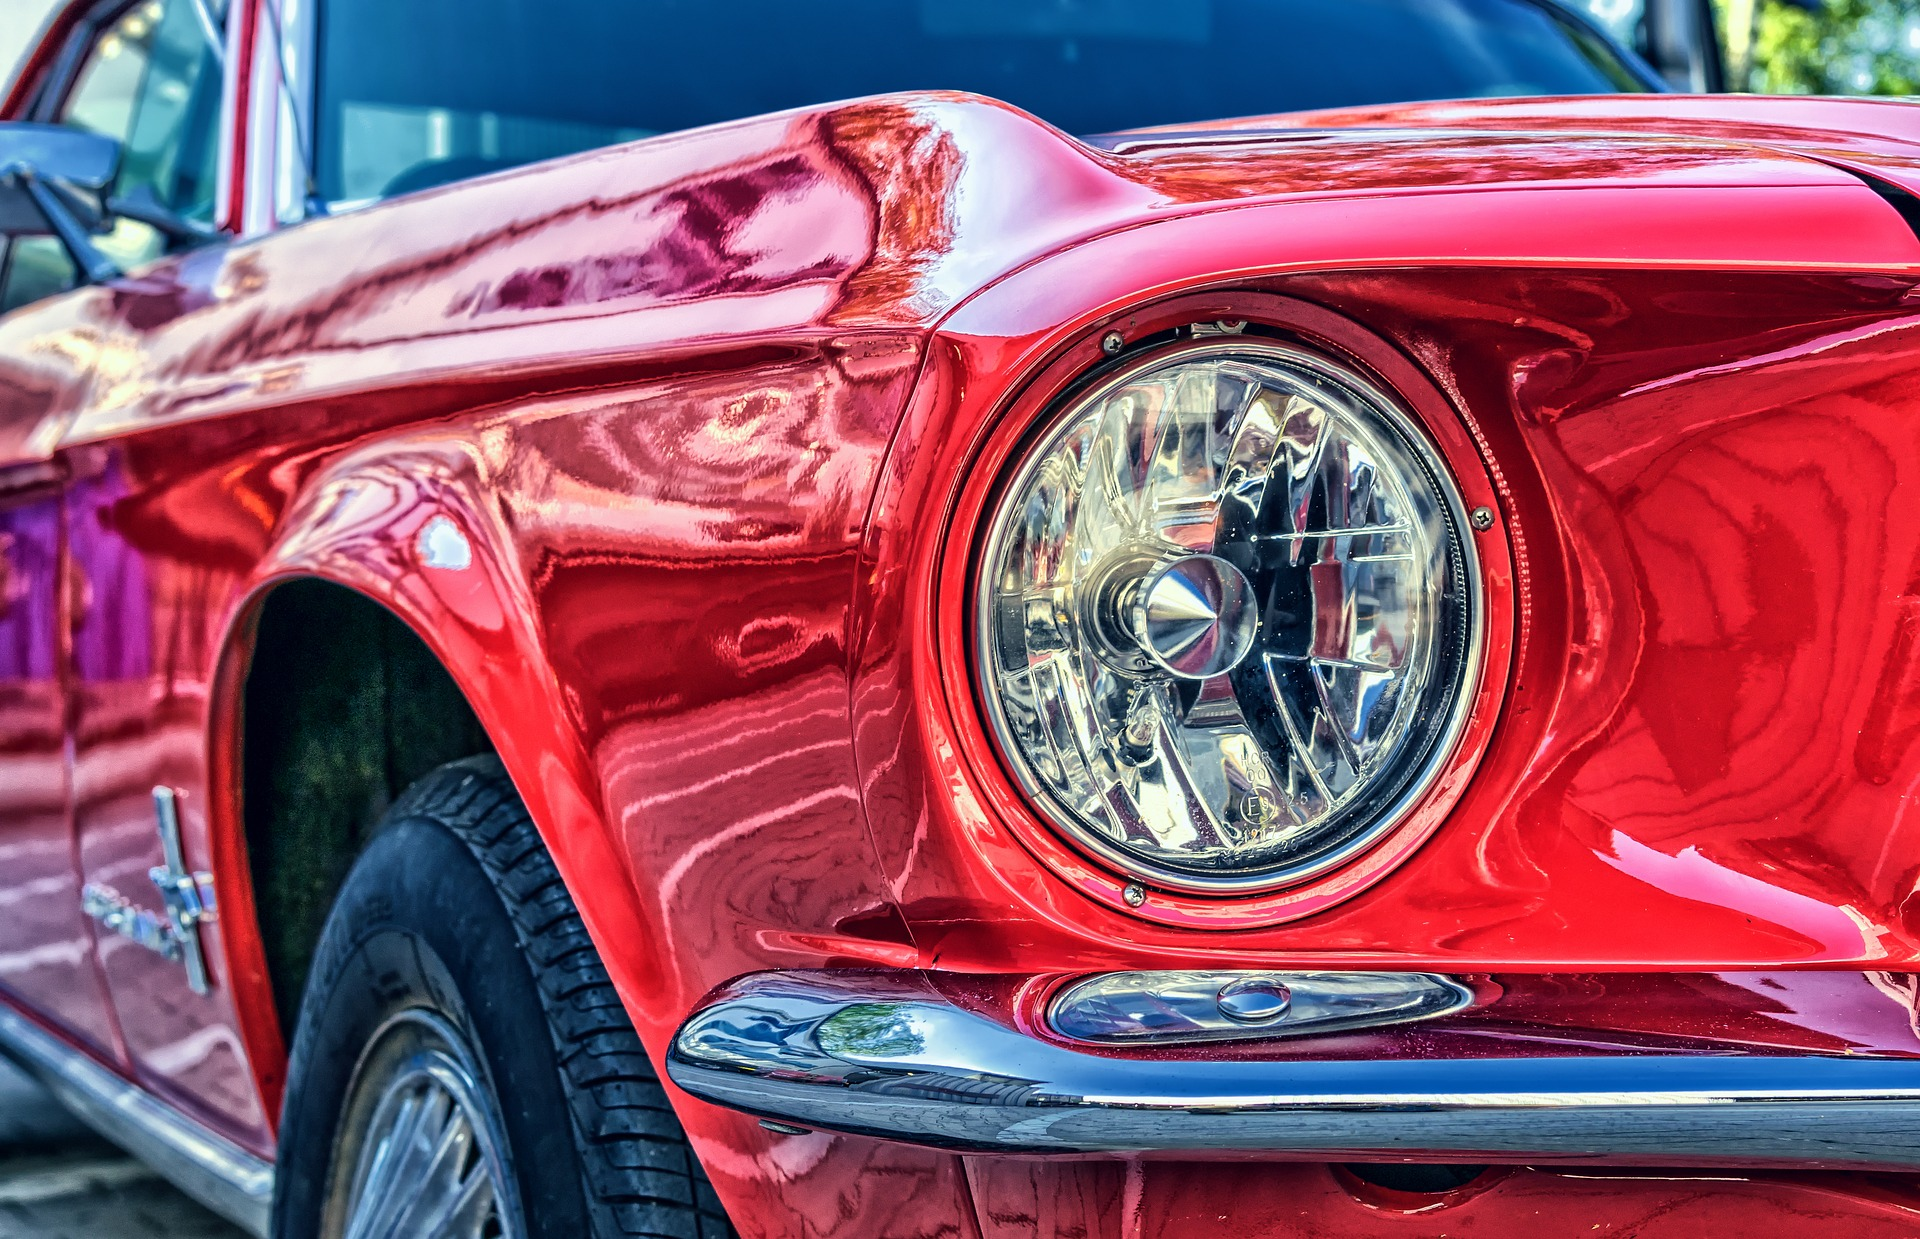 How to Restore Chrome on Classic Cars